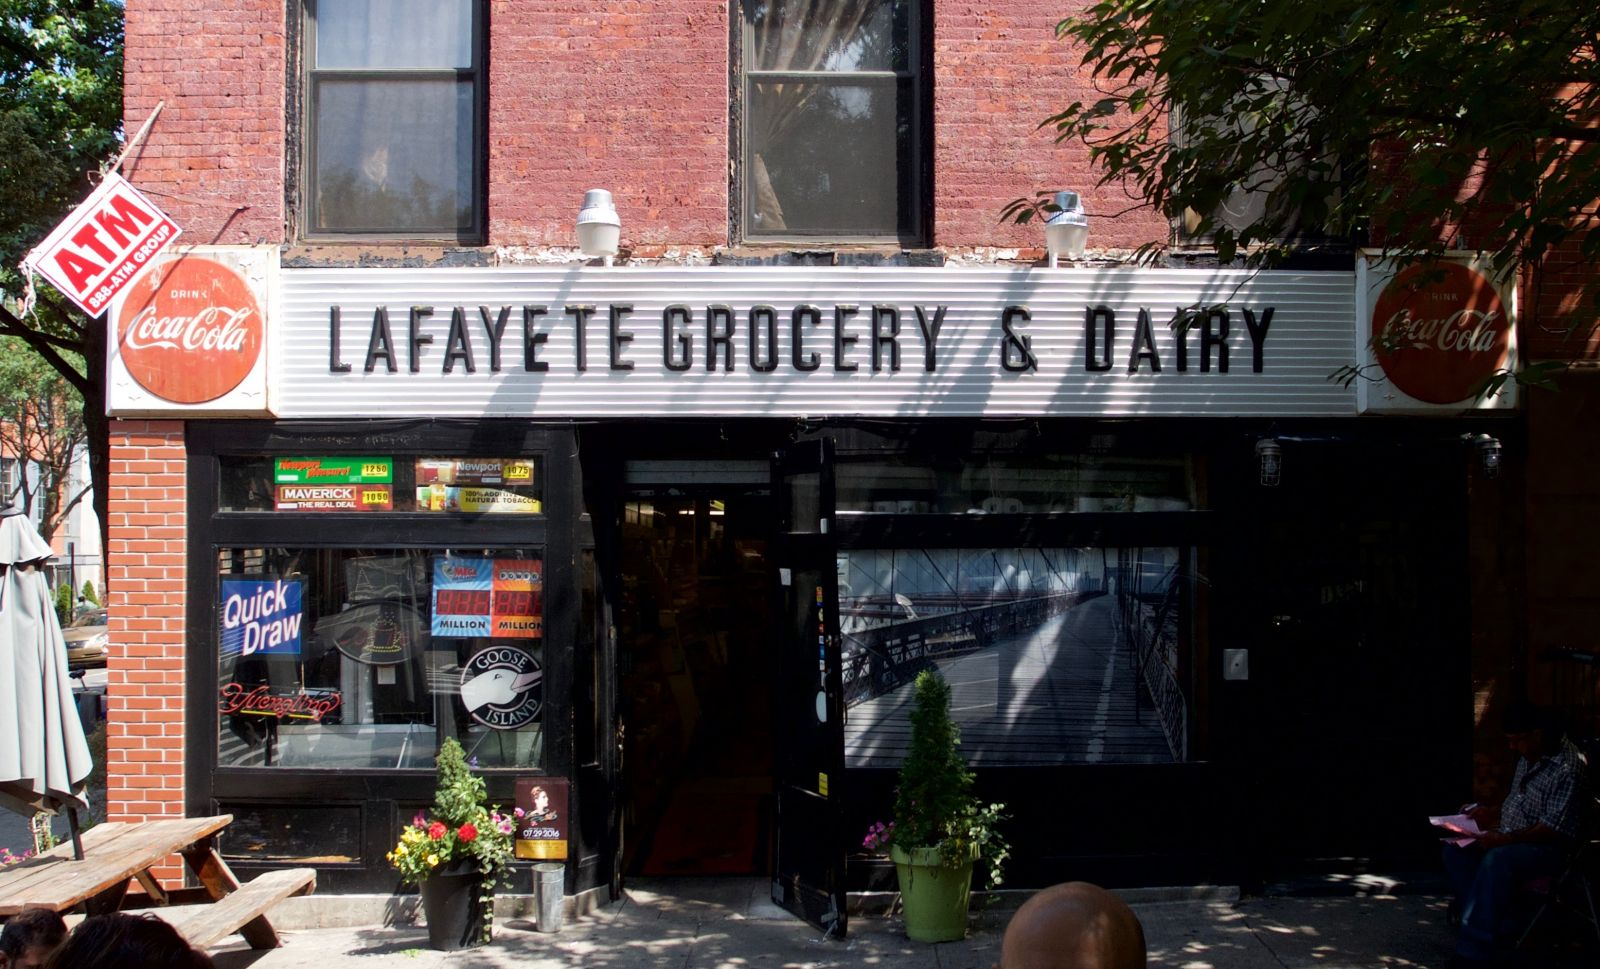 Lafayet(t)e Grocery & Dairy   Prefab Coca-Cola sign   Flickr